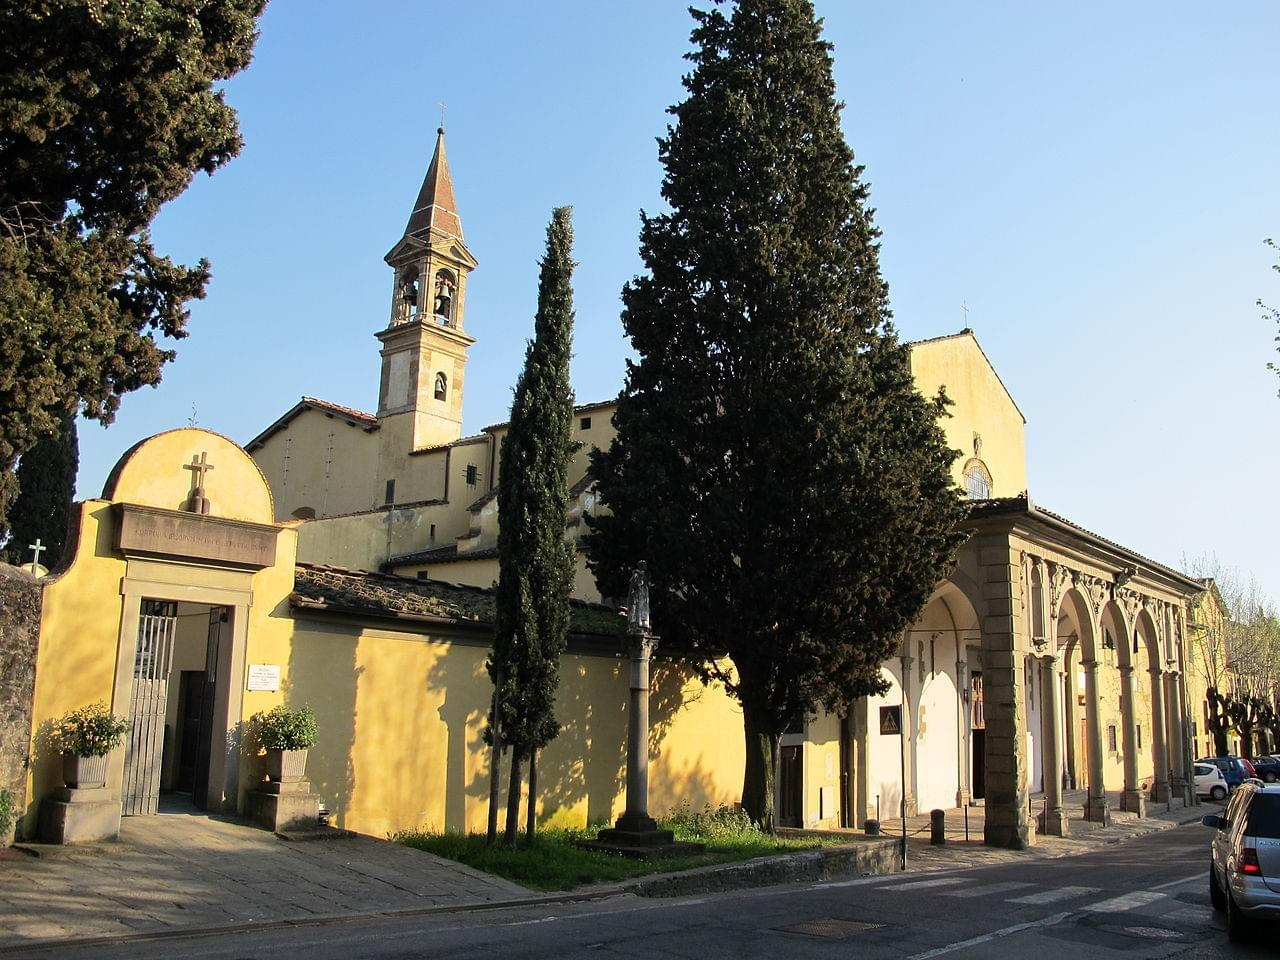 Eglise de San domenico